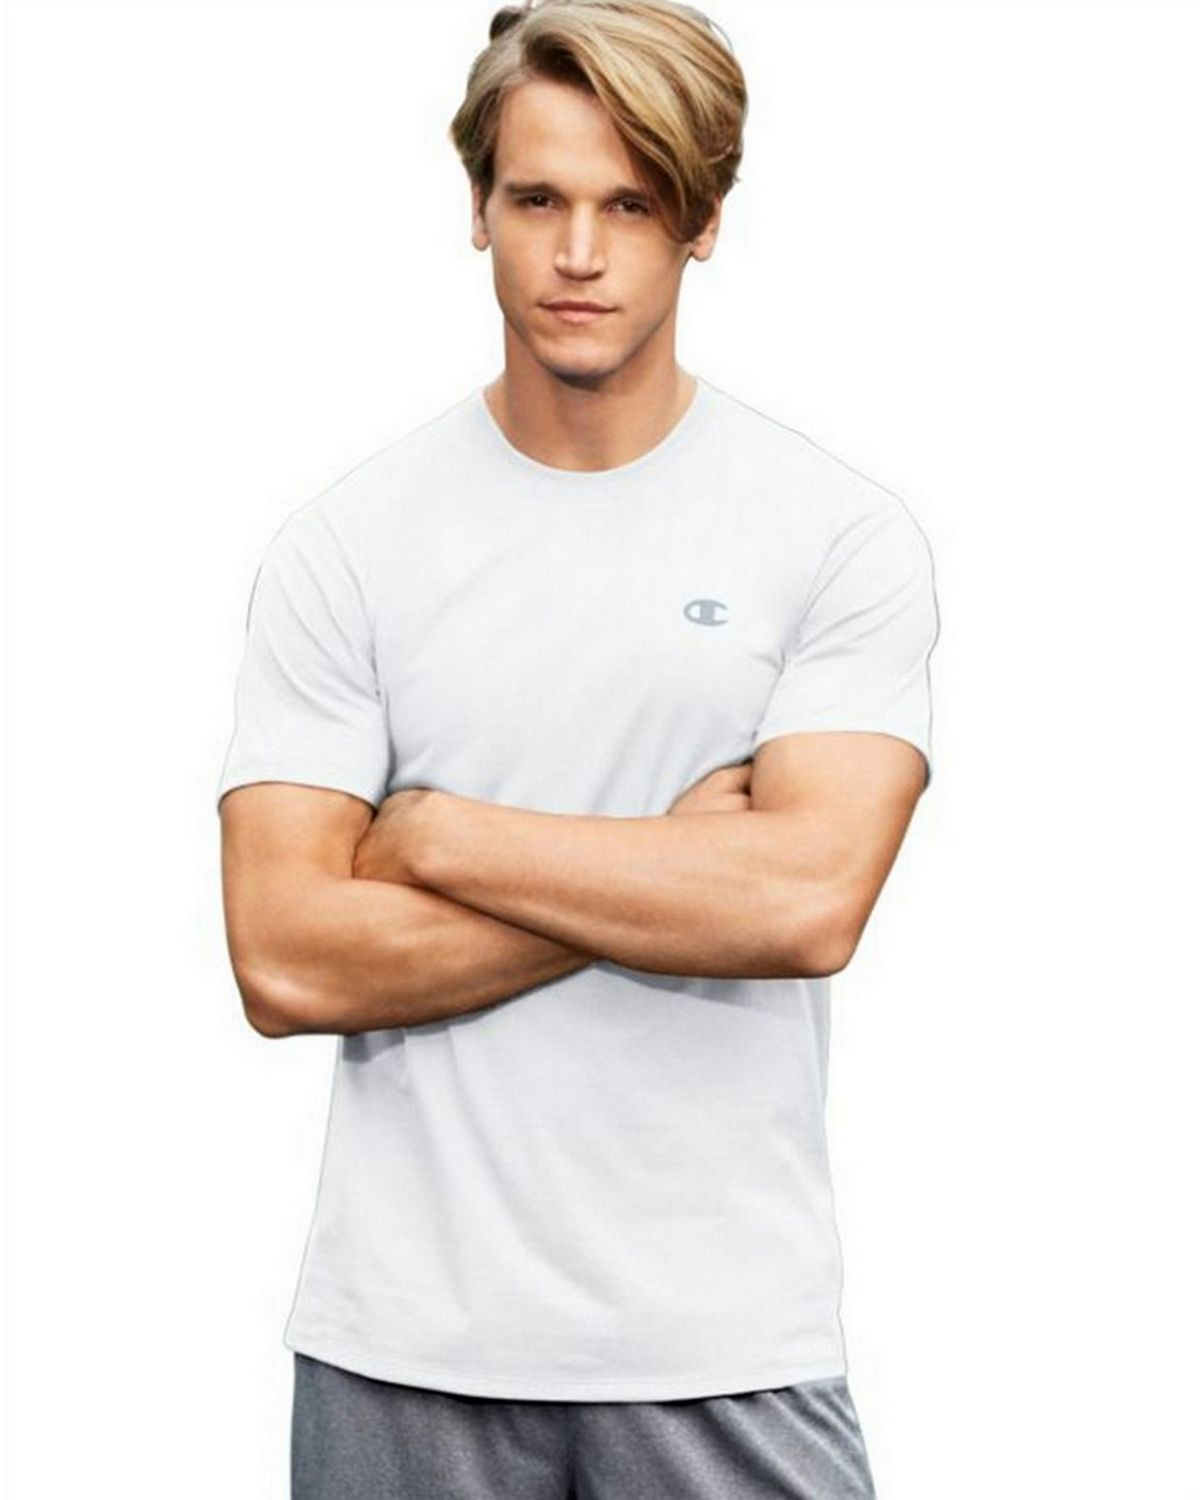 Champion T0351 Vapor Mens Cotton Tee - White - L T0351